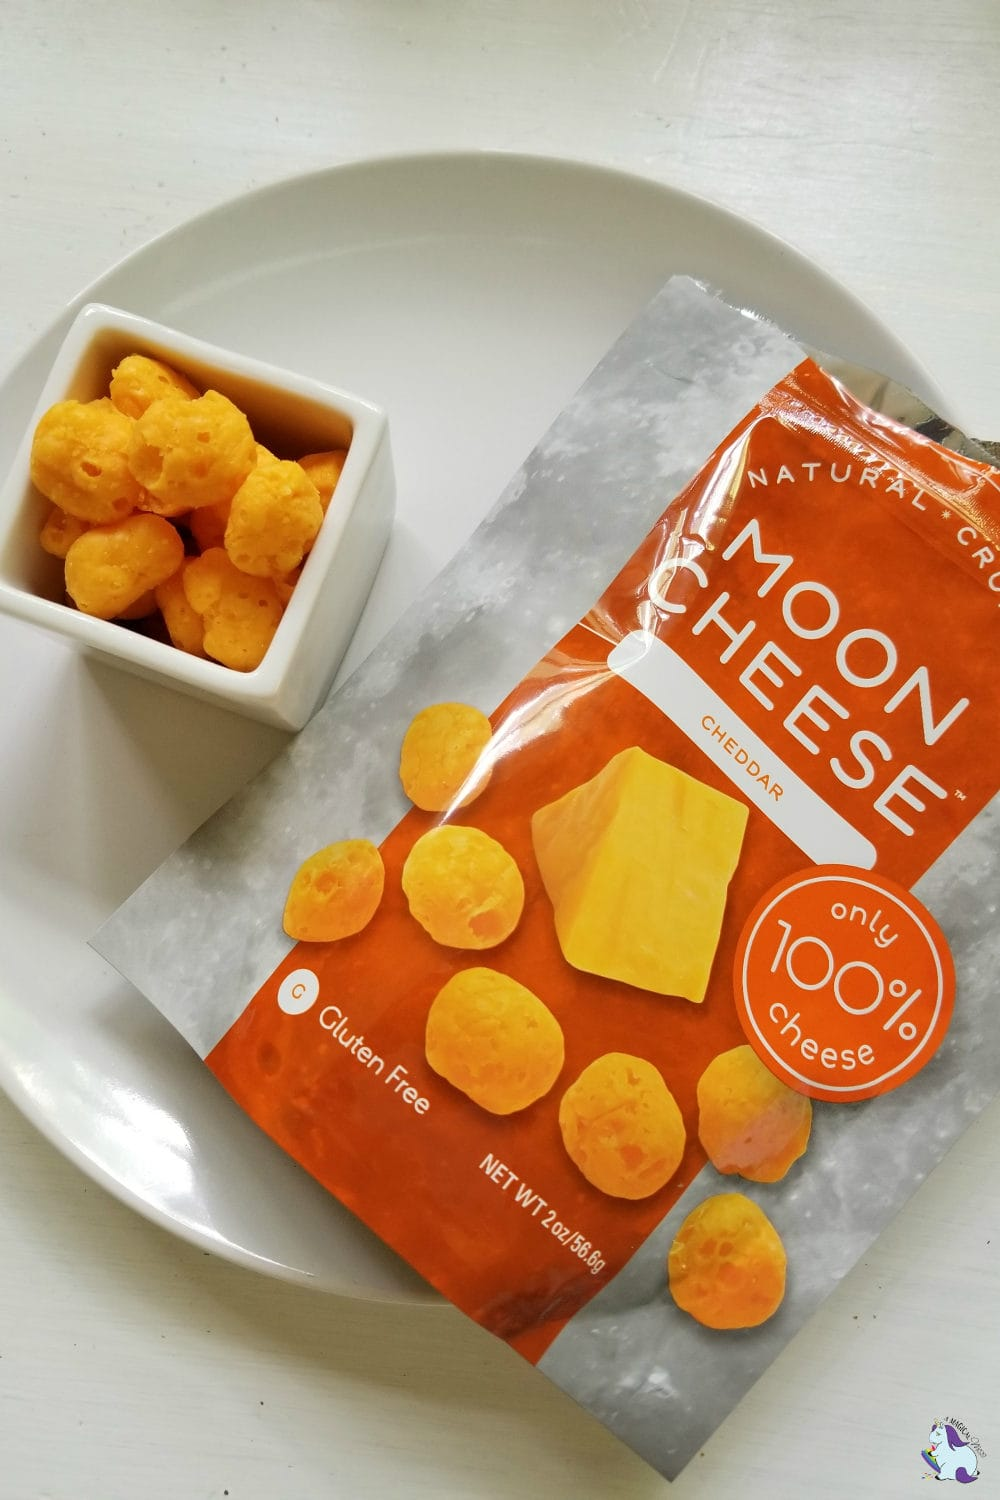 Cheddar Moon Cheese - great for school lunches